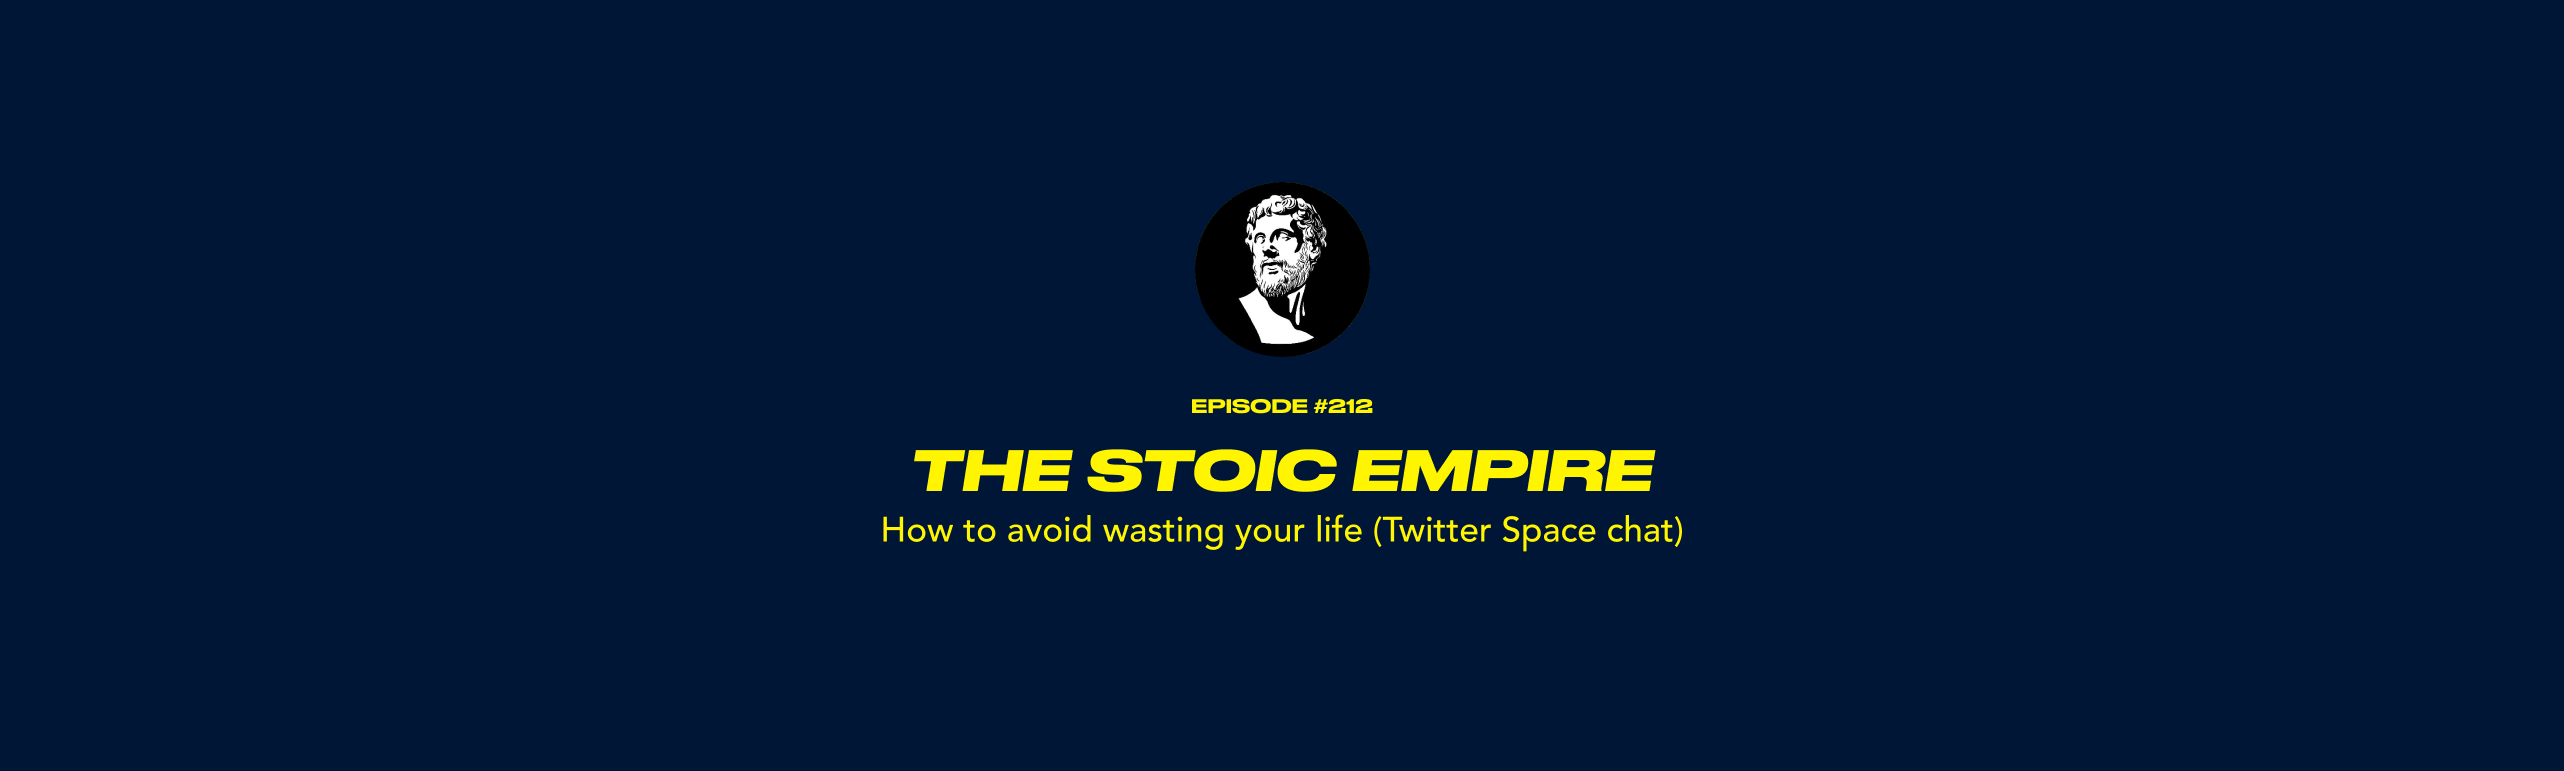 The Stoic Empire - How to avoid wasting your life (Twitter Space chat)